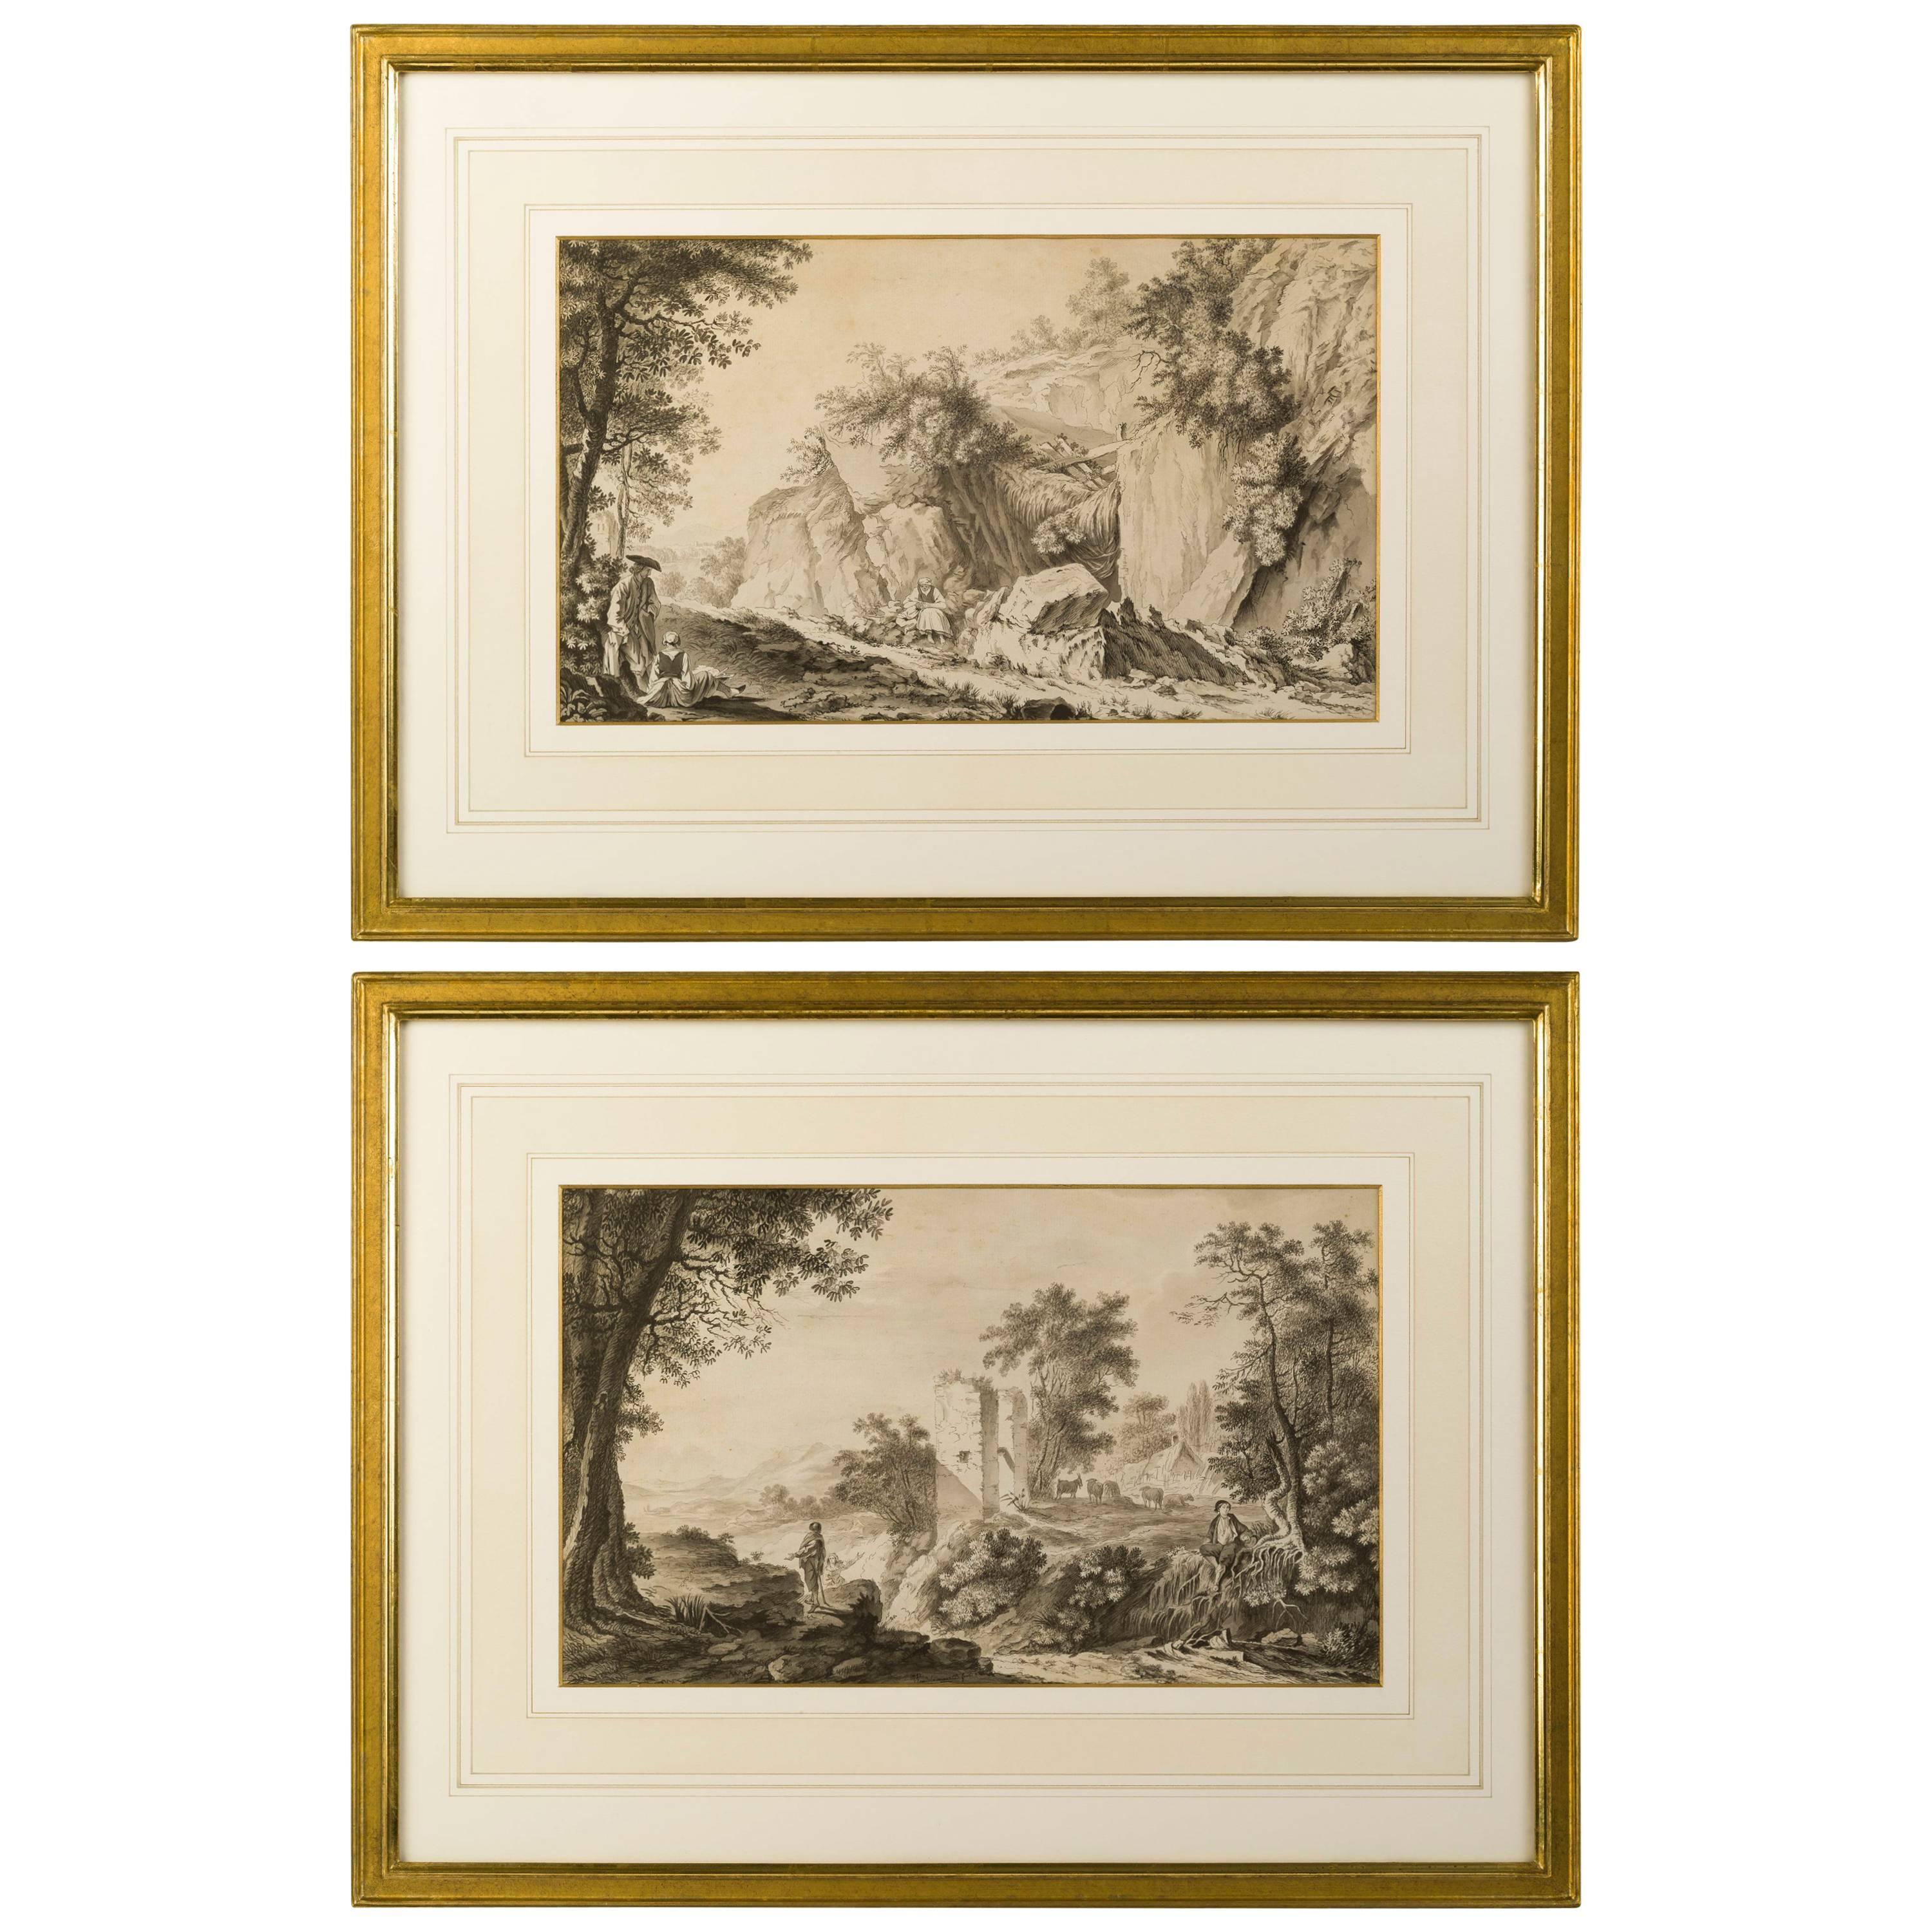 Pair of Neoclassical Landscape Drawings, French School, Late 18th Century